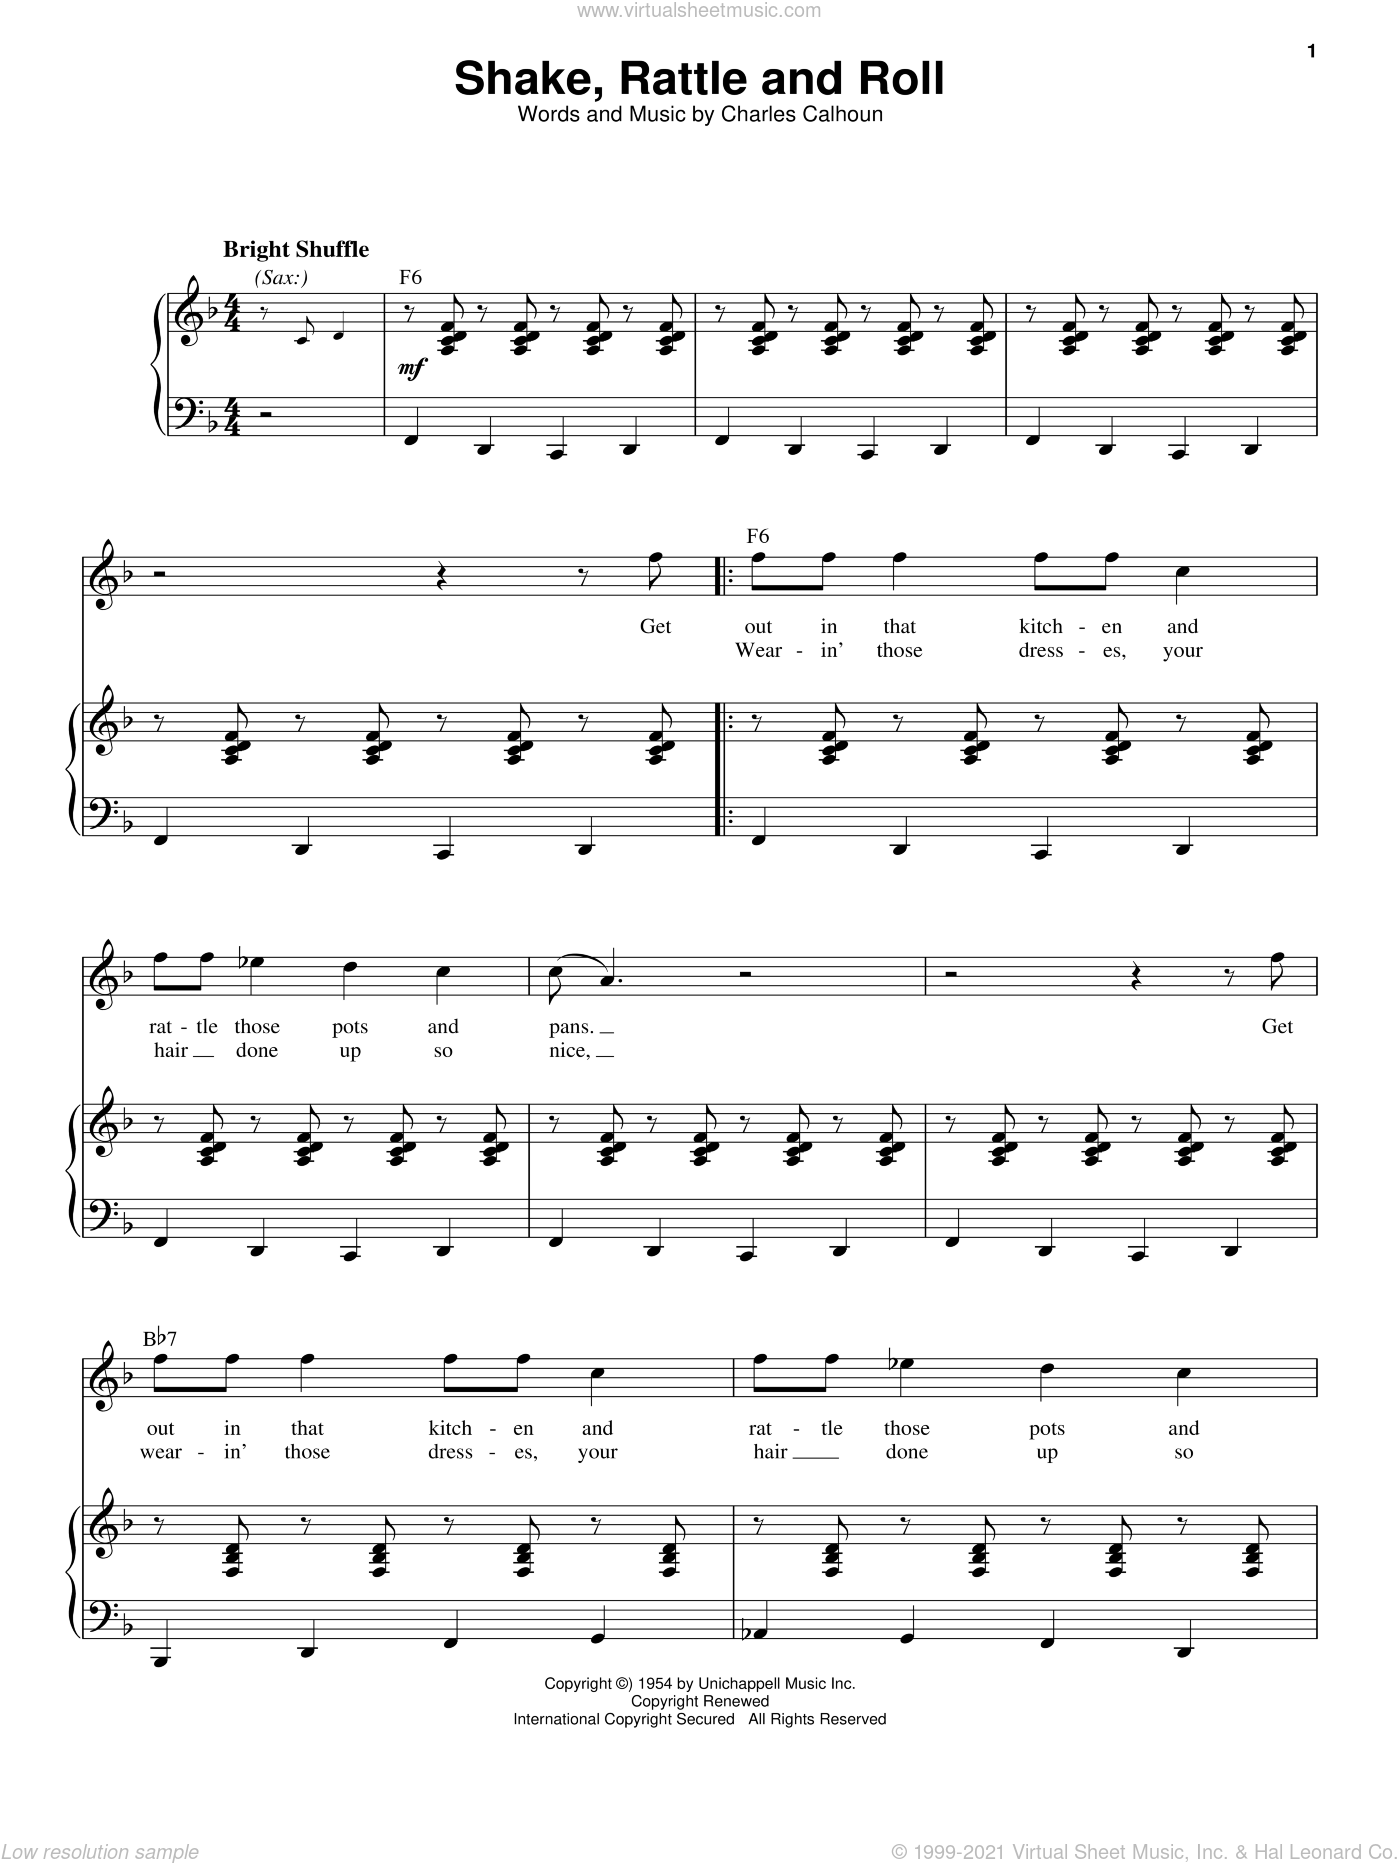 Shake, Rattle And Roll sheet music for voice and piano by Charles Calhoun